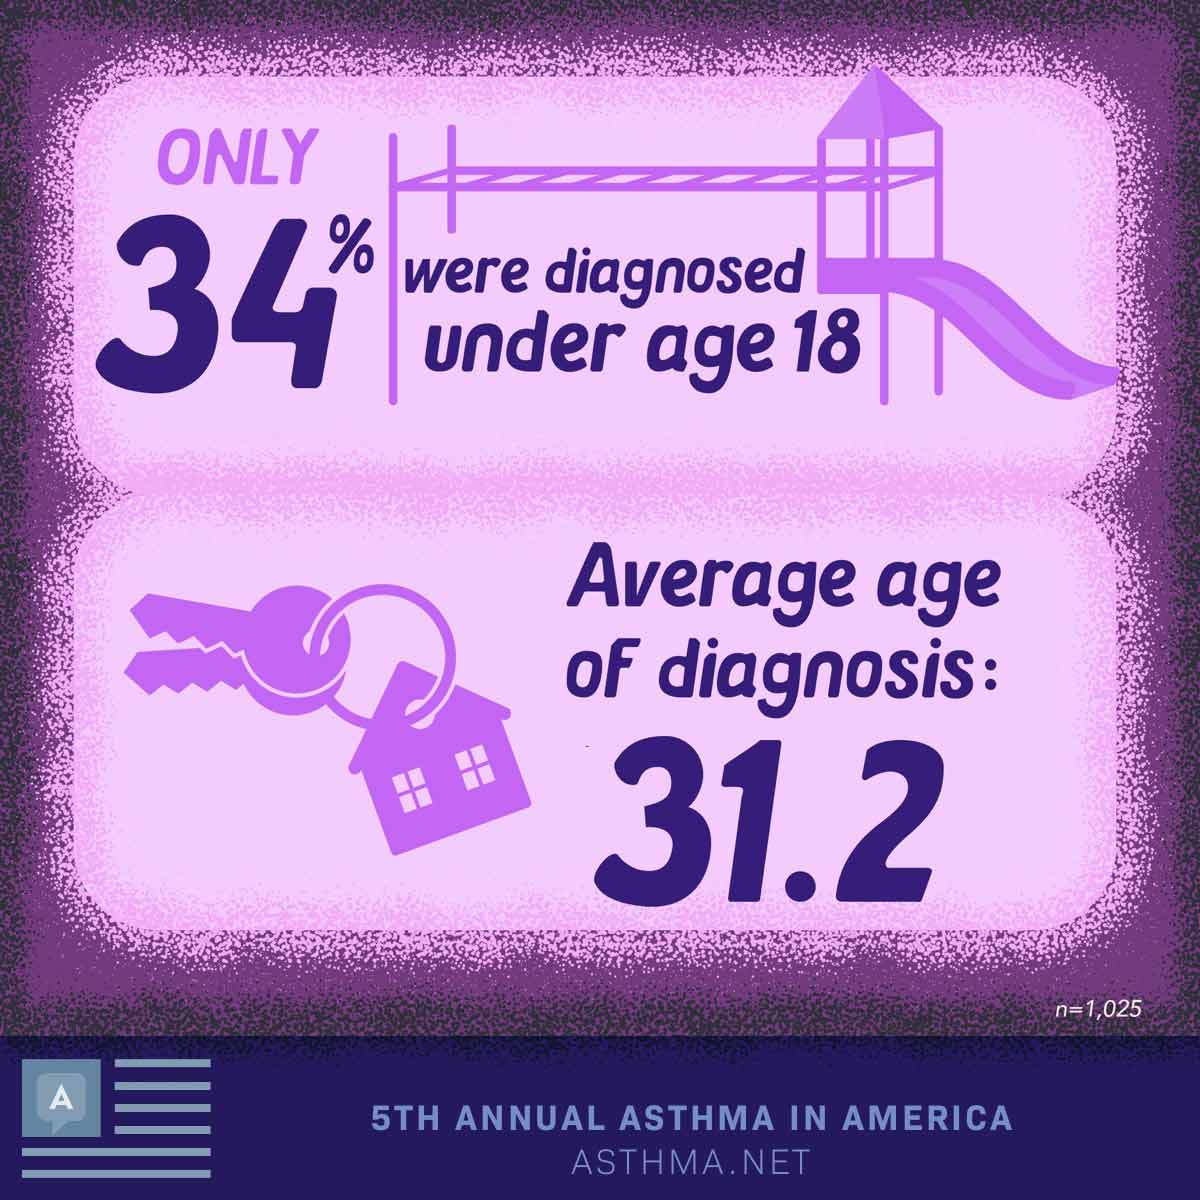 Only 34% were diagnosed under age 18, Average age of diagnosis: 31.2